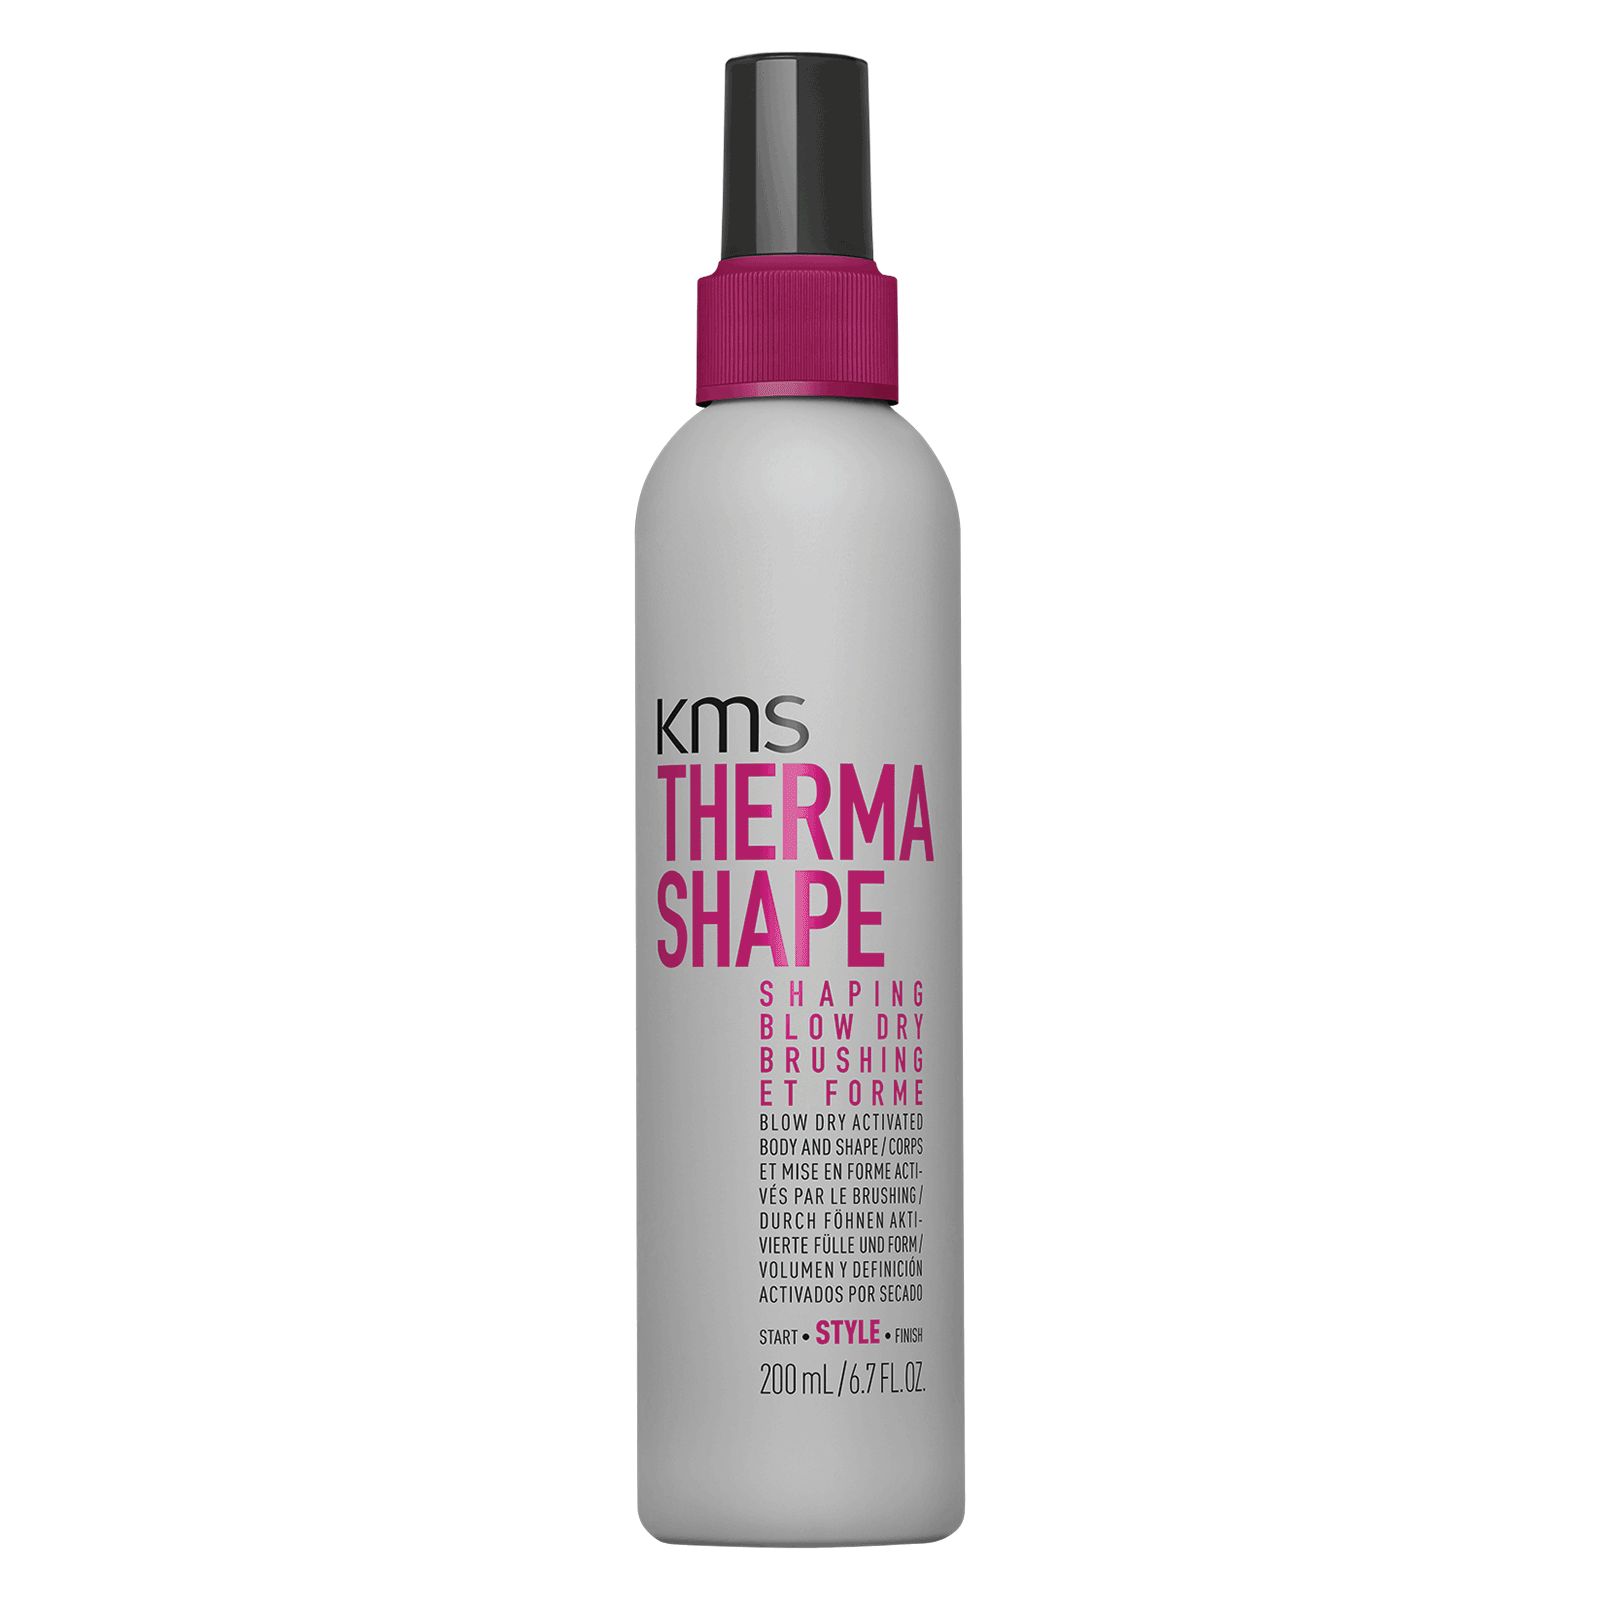 THERMASHAPE Shaping Blow Dry